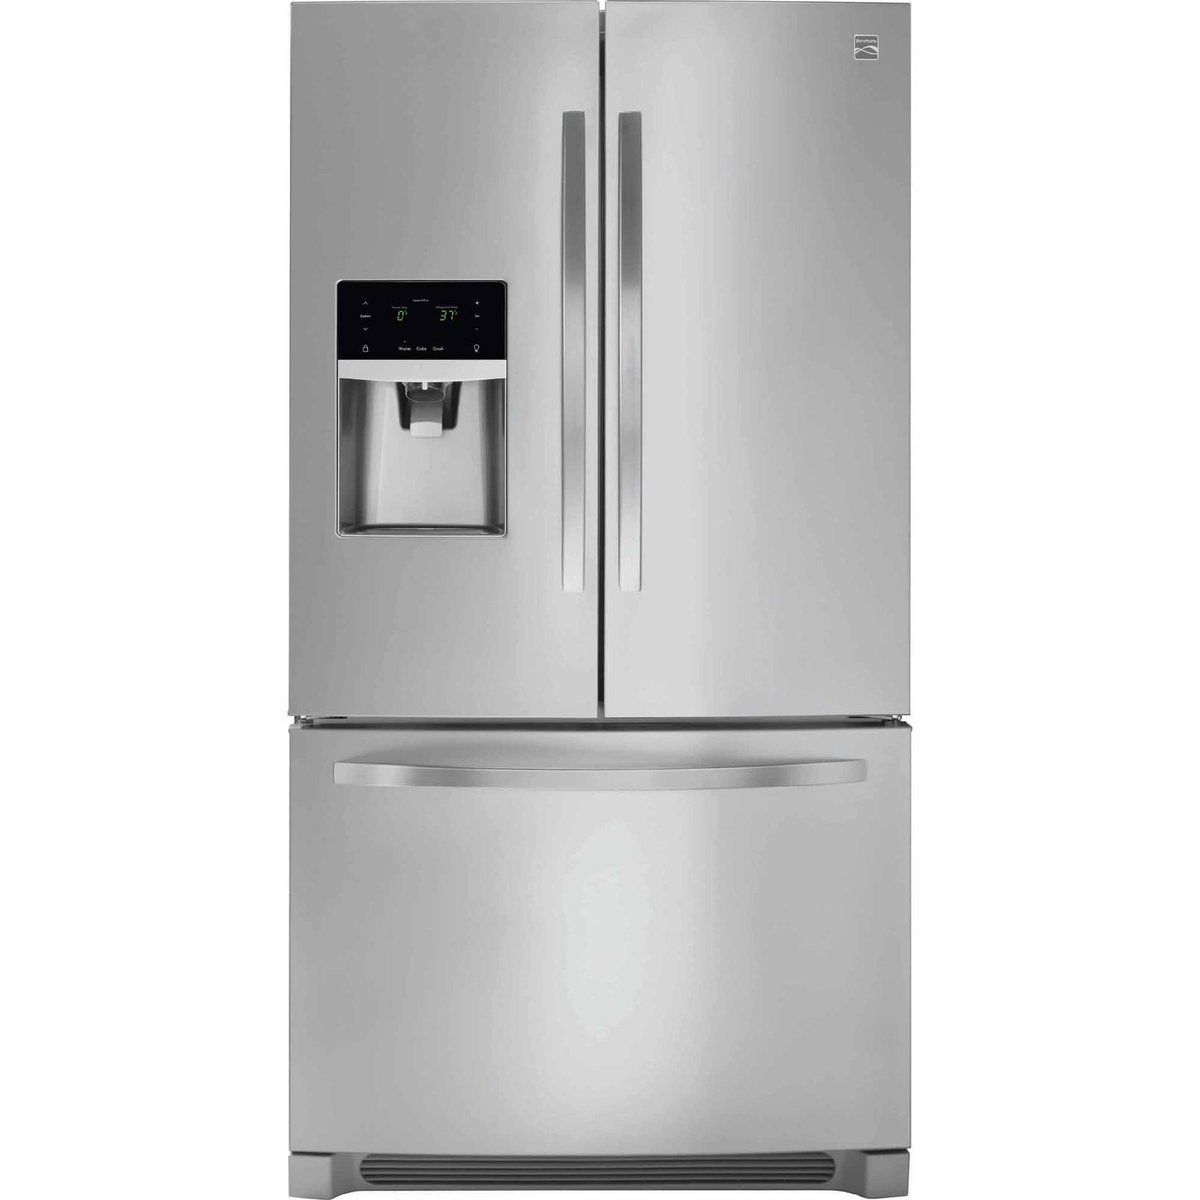 Kenmore 70443 21.9 cu. ft. French Door Refrigerator, Stainless Steel Sears Home Services - water filters